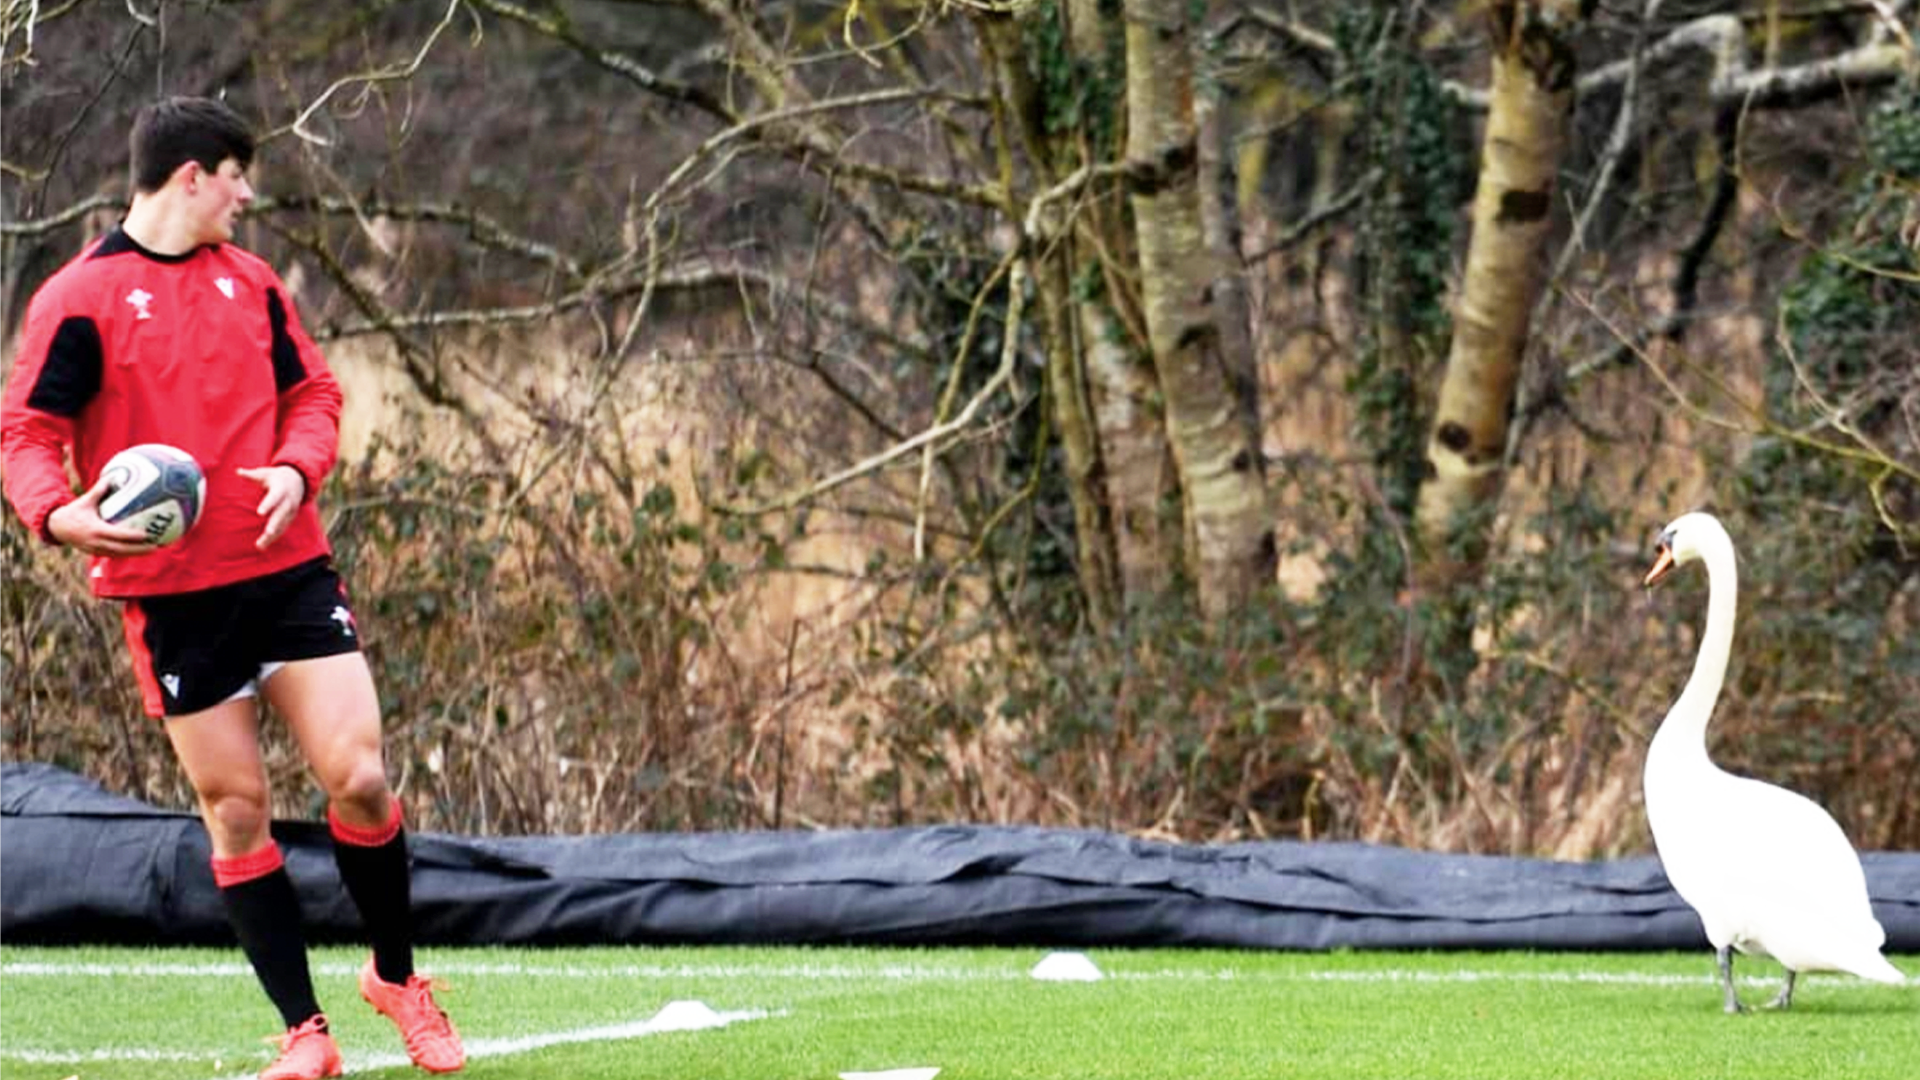 Investigation opened into England Rugby after bizarre training ground incident in Wales